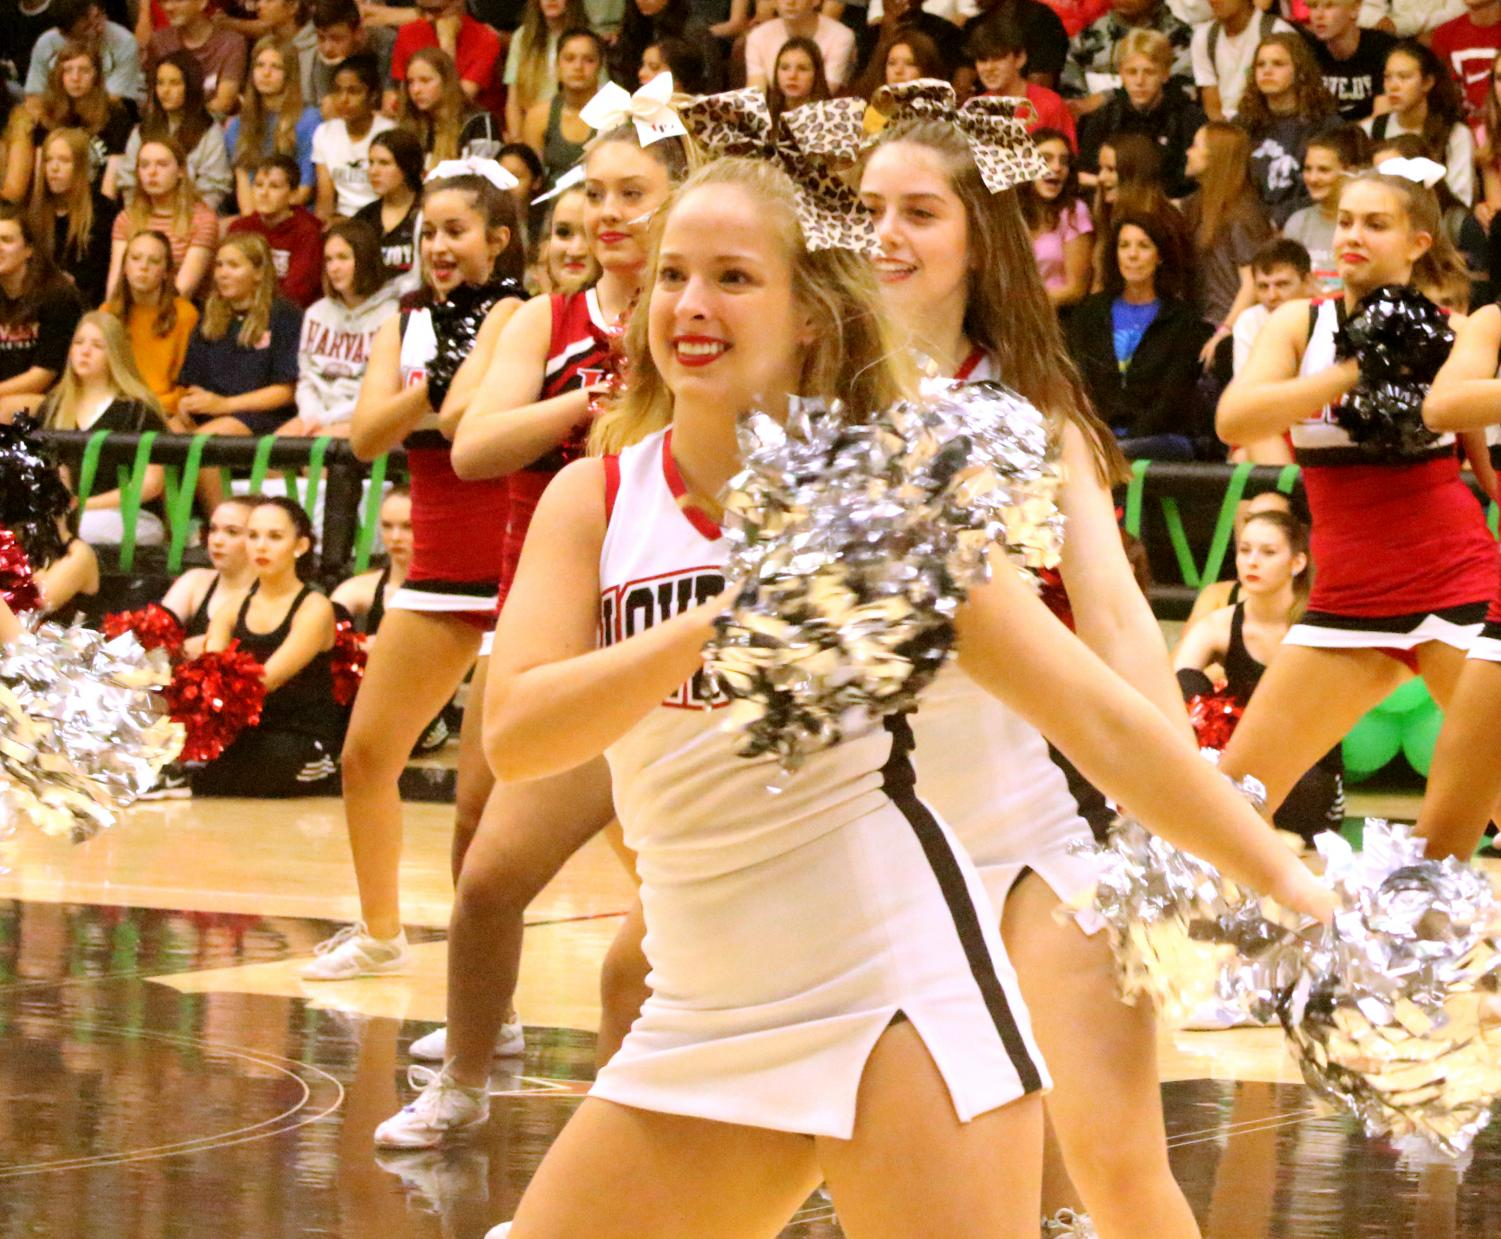 Madison+Kohl+puts+pep+in+her+step+during+the+opening+pep+rally+of+the+year.+With++cheer+season+starting+along+with+football+season%2C+they+are+hoping+for+a+bright+future.